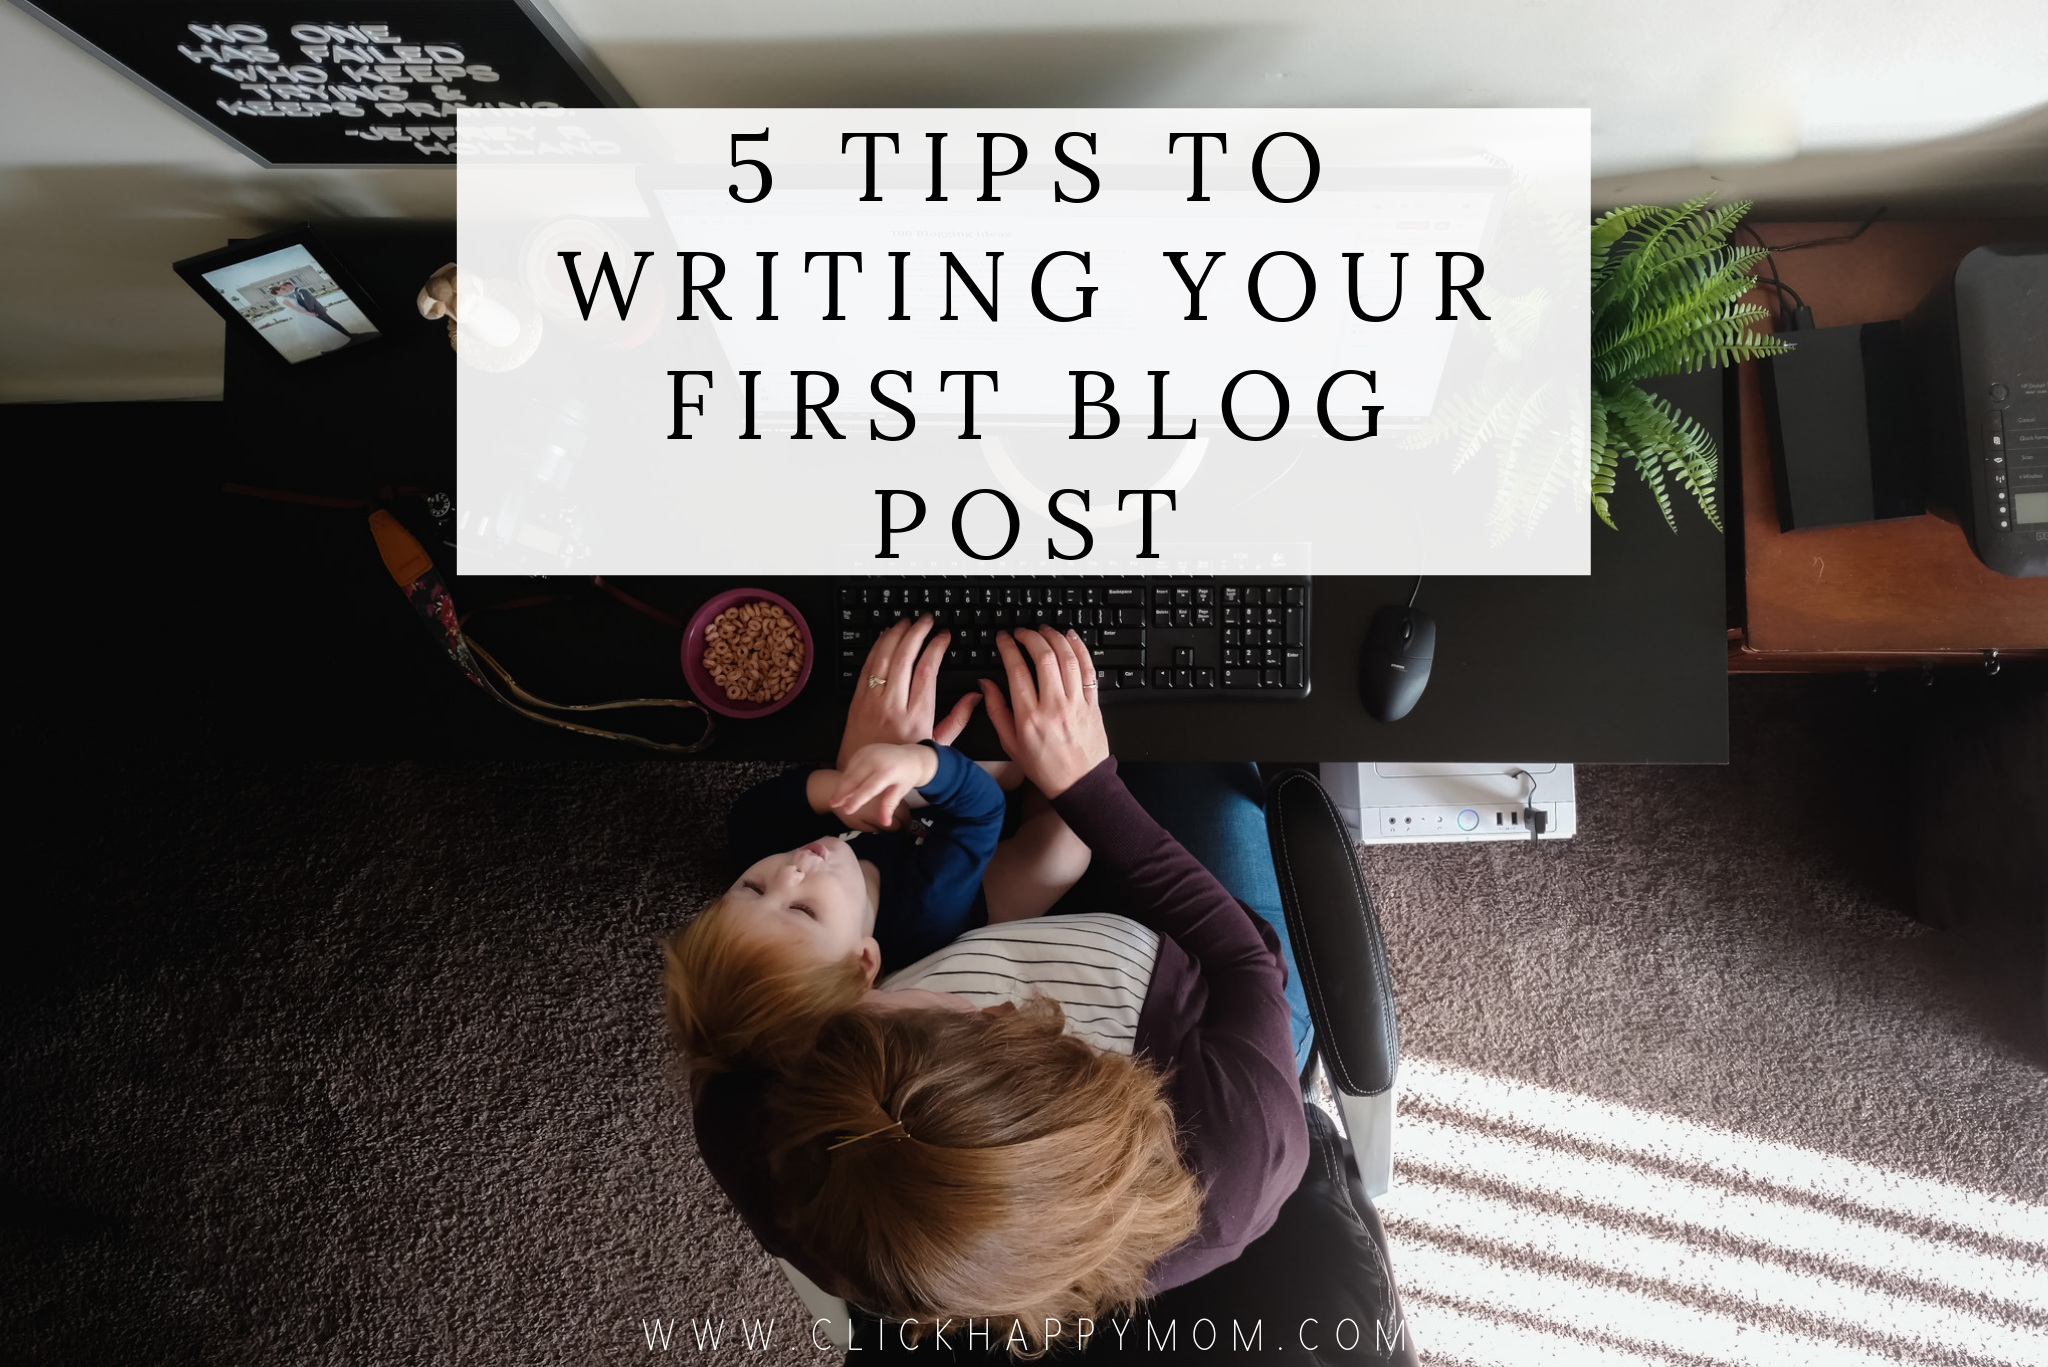 5 Tips to Writing Your First Blog Post